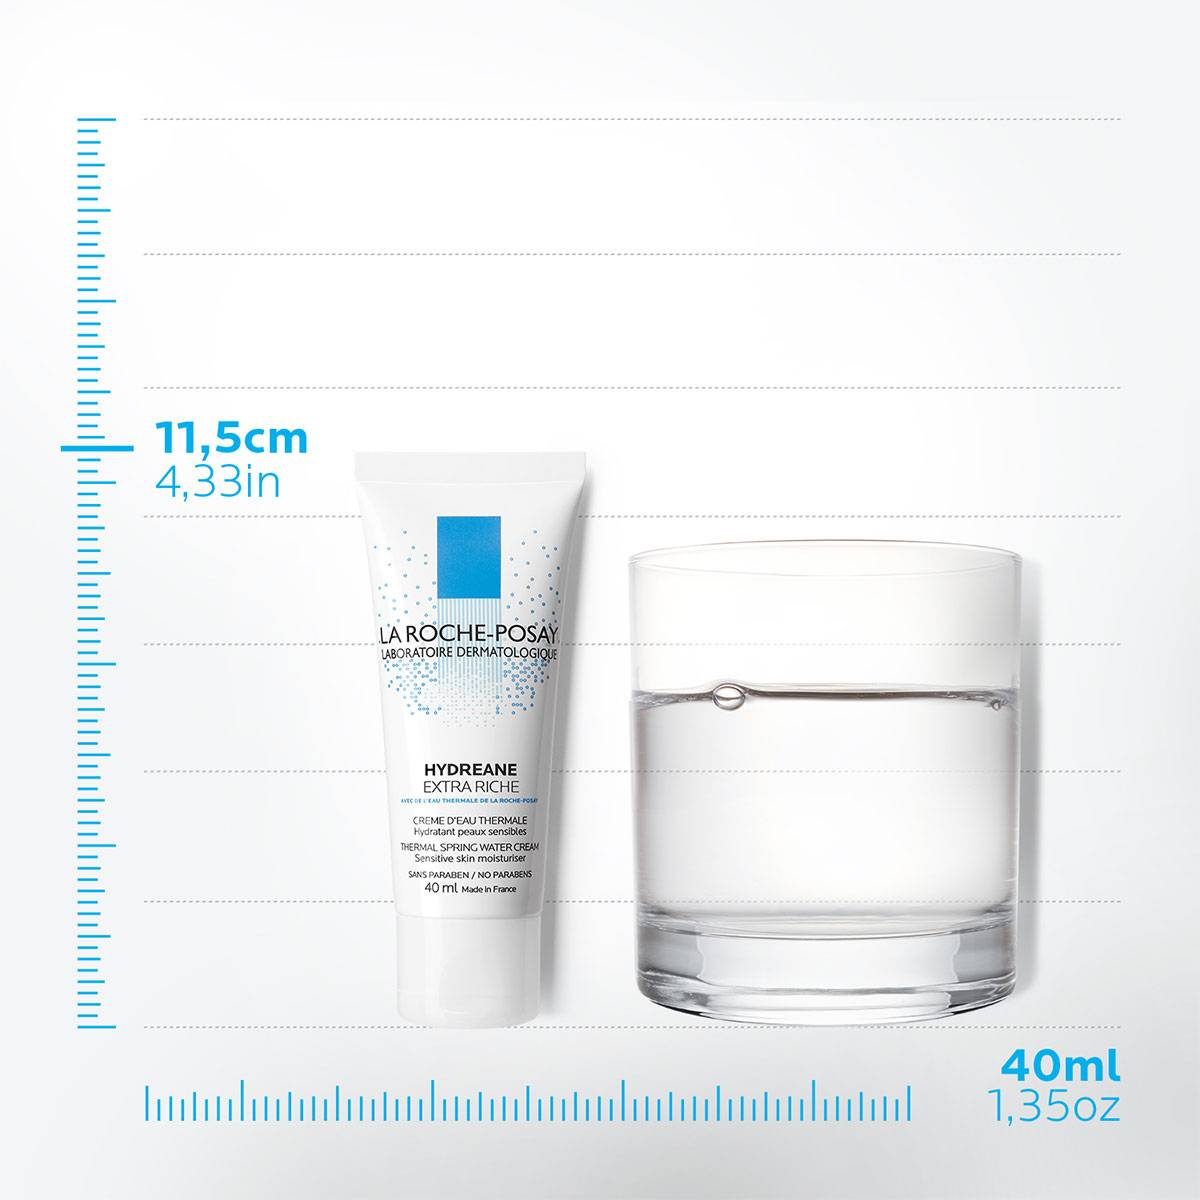 La Roche Posay ProductPage Hydreane Extra Rich 40ml 3337872413346